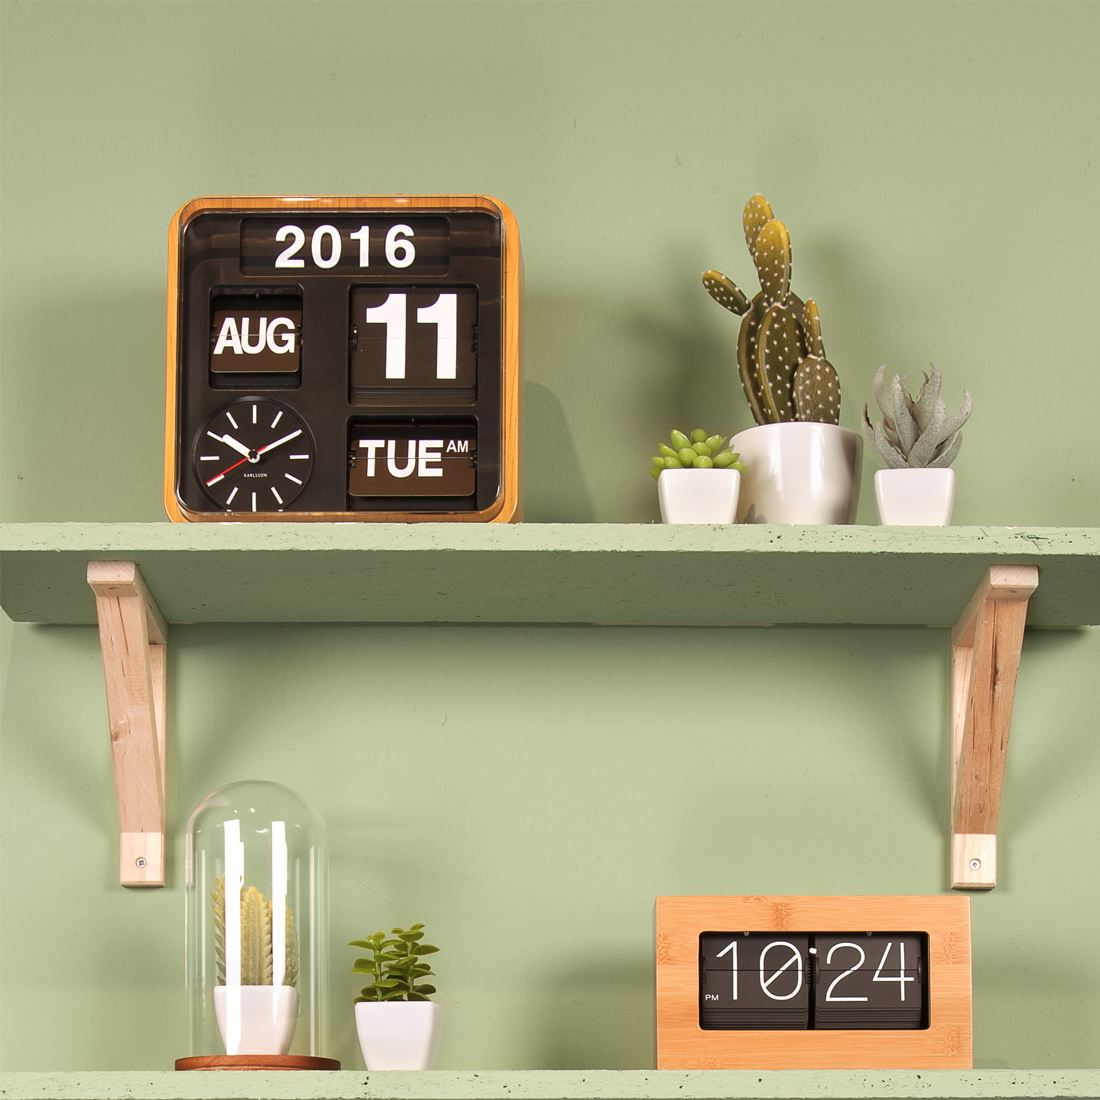 Big Flip Clock Karlsson Big Flip And Mini Flip Retro Wall Clocks With Day